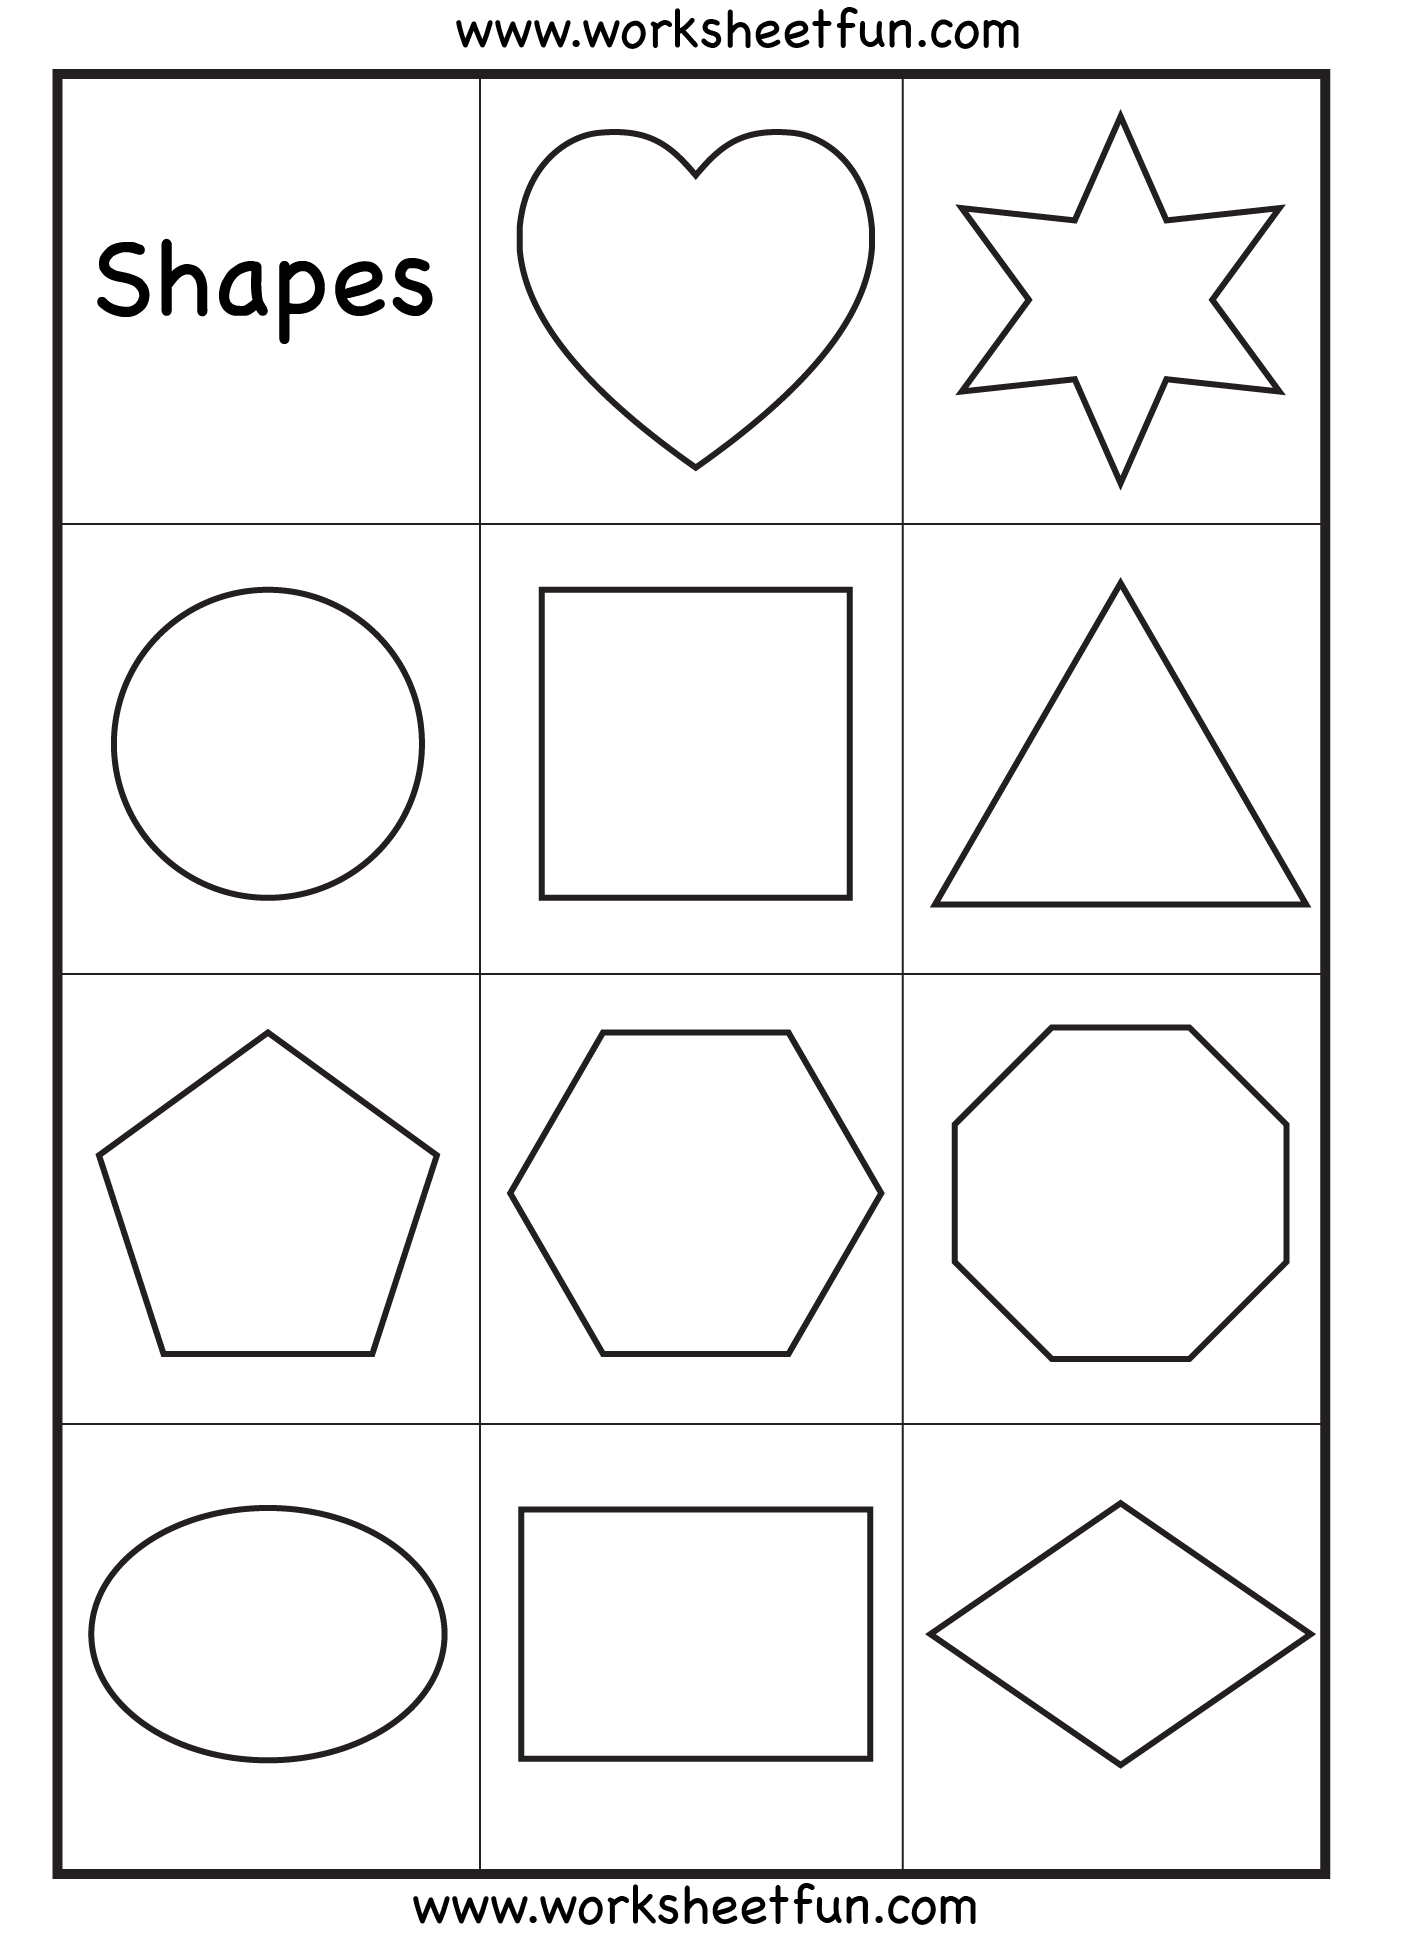 Printables Shapes Worksheets 1000 images about shapes on pinterest circles the shape and preschool worksheets